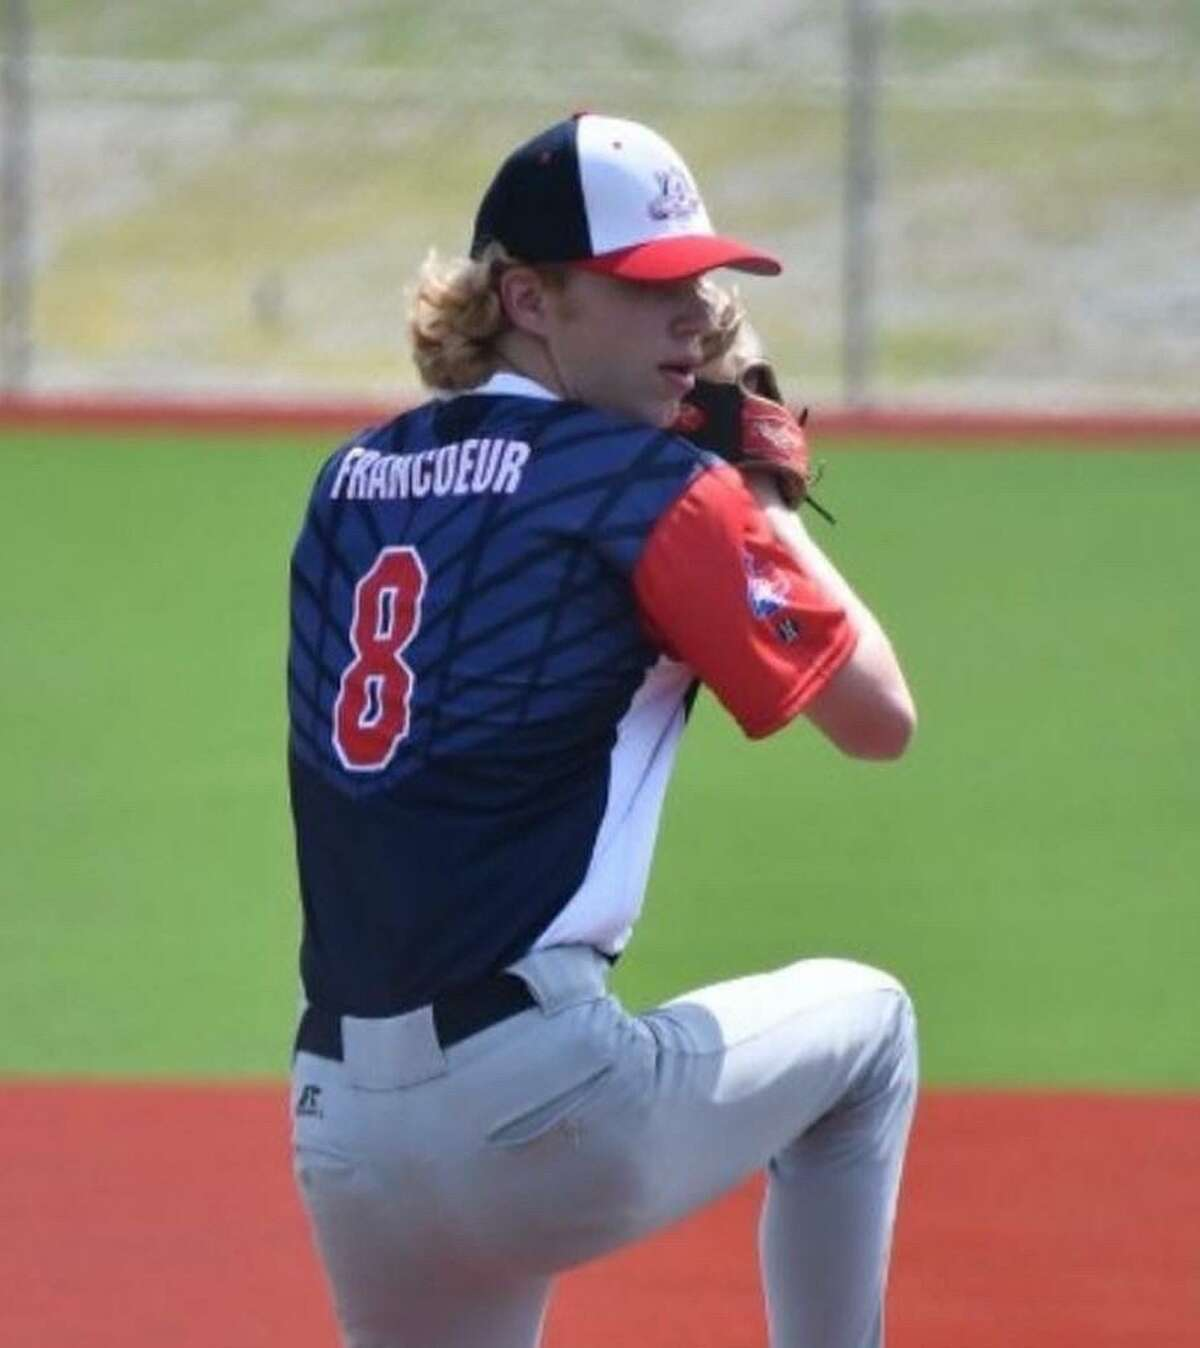 Sean Francouer threw a complete game five-hit shutout. He struck out 11 and didn't walk a batter.